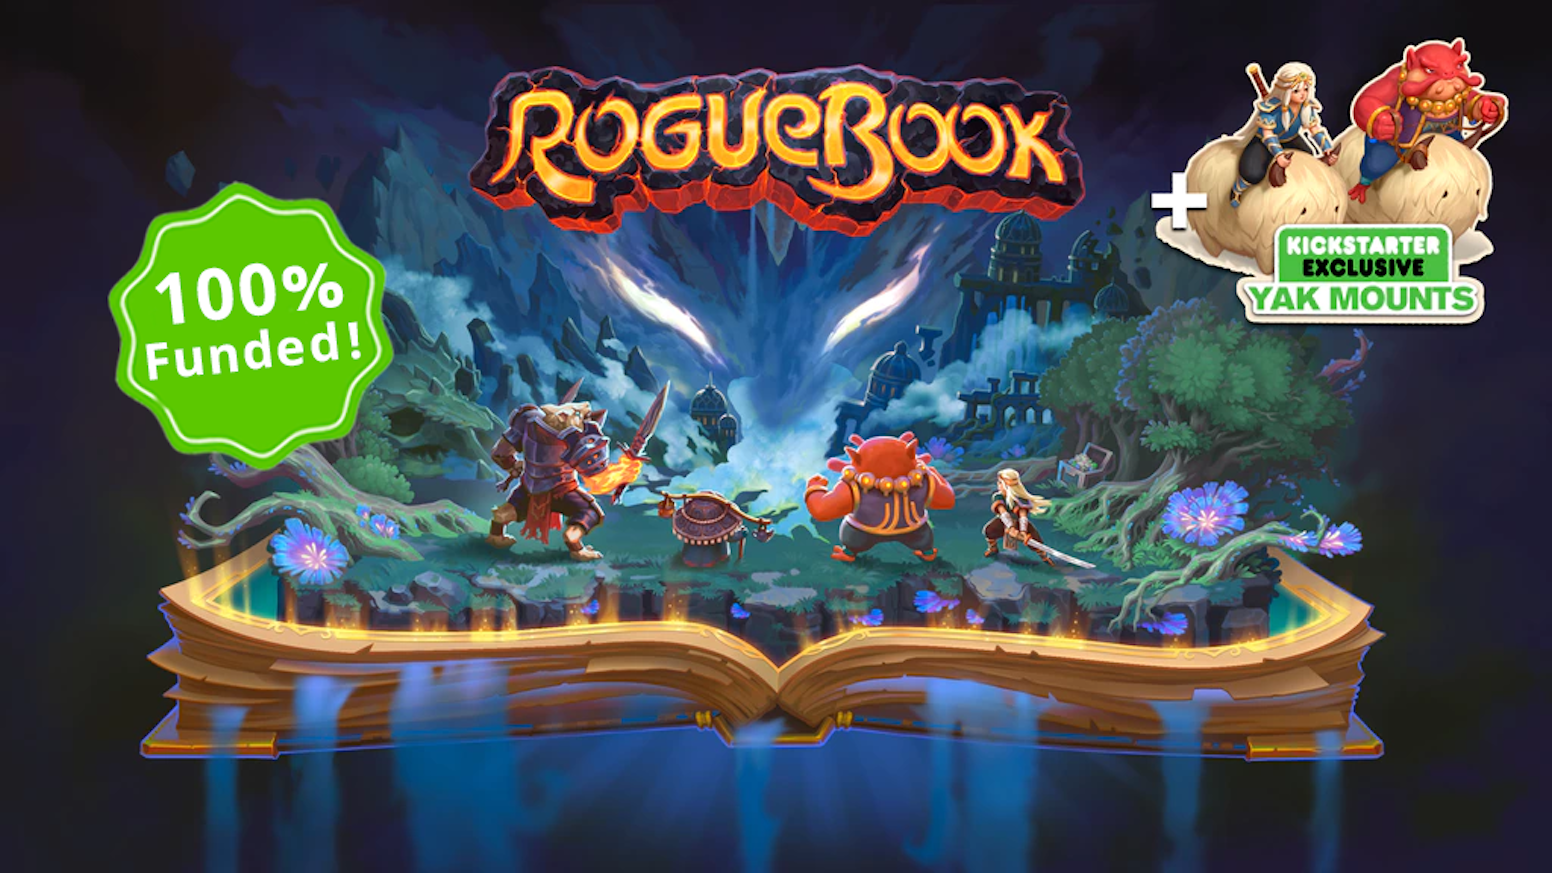 Roguebook aims to become the ultimate roguelike deckbuilder. Based on the legends of the Faeria universe.